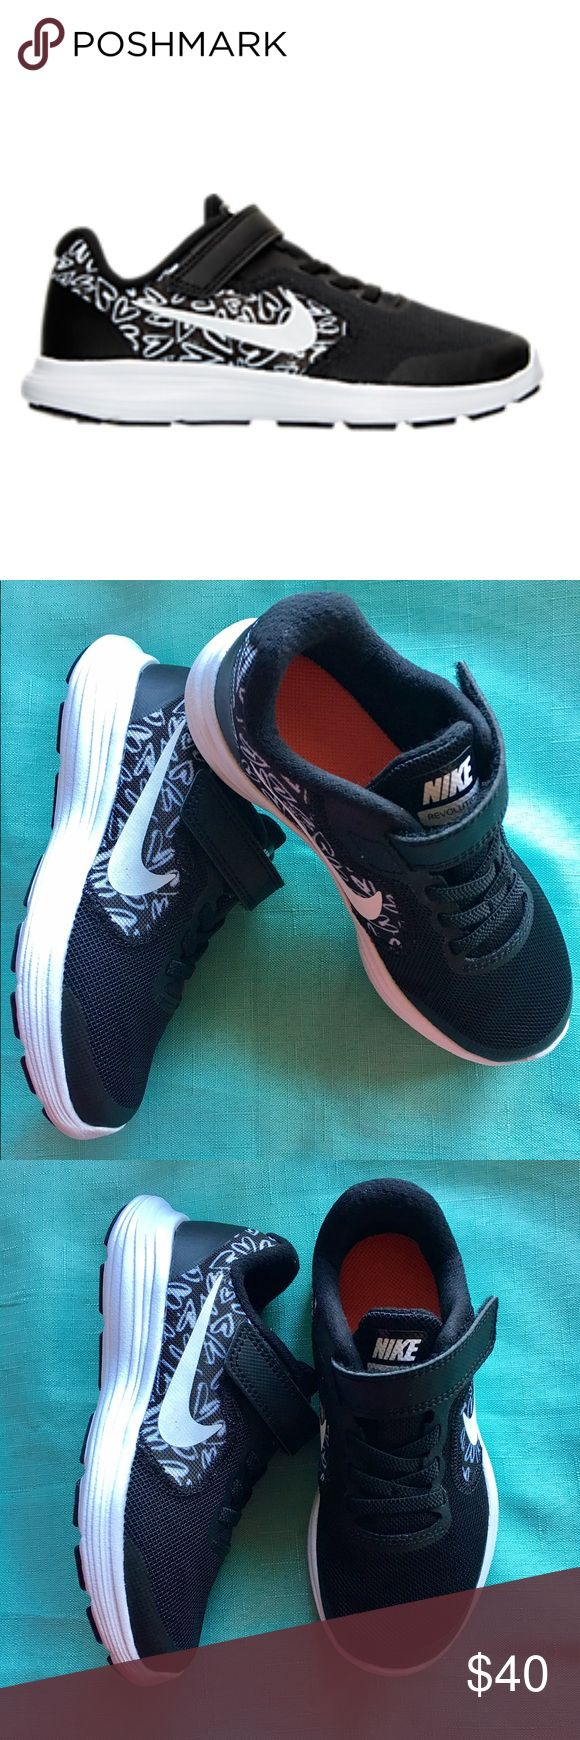 """Nike Revolution 3 girls running shoes Nike Revolution 3 girls running shoes, sizes toddler 11 and 13, color black with white hearts, Velcro look, """"brand new"""" Nike Shoes Sneakers"""